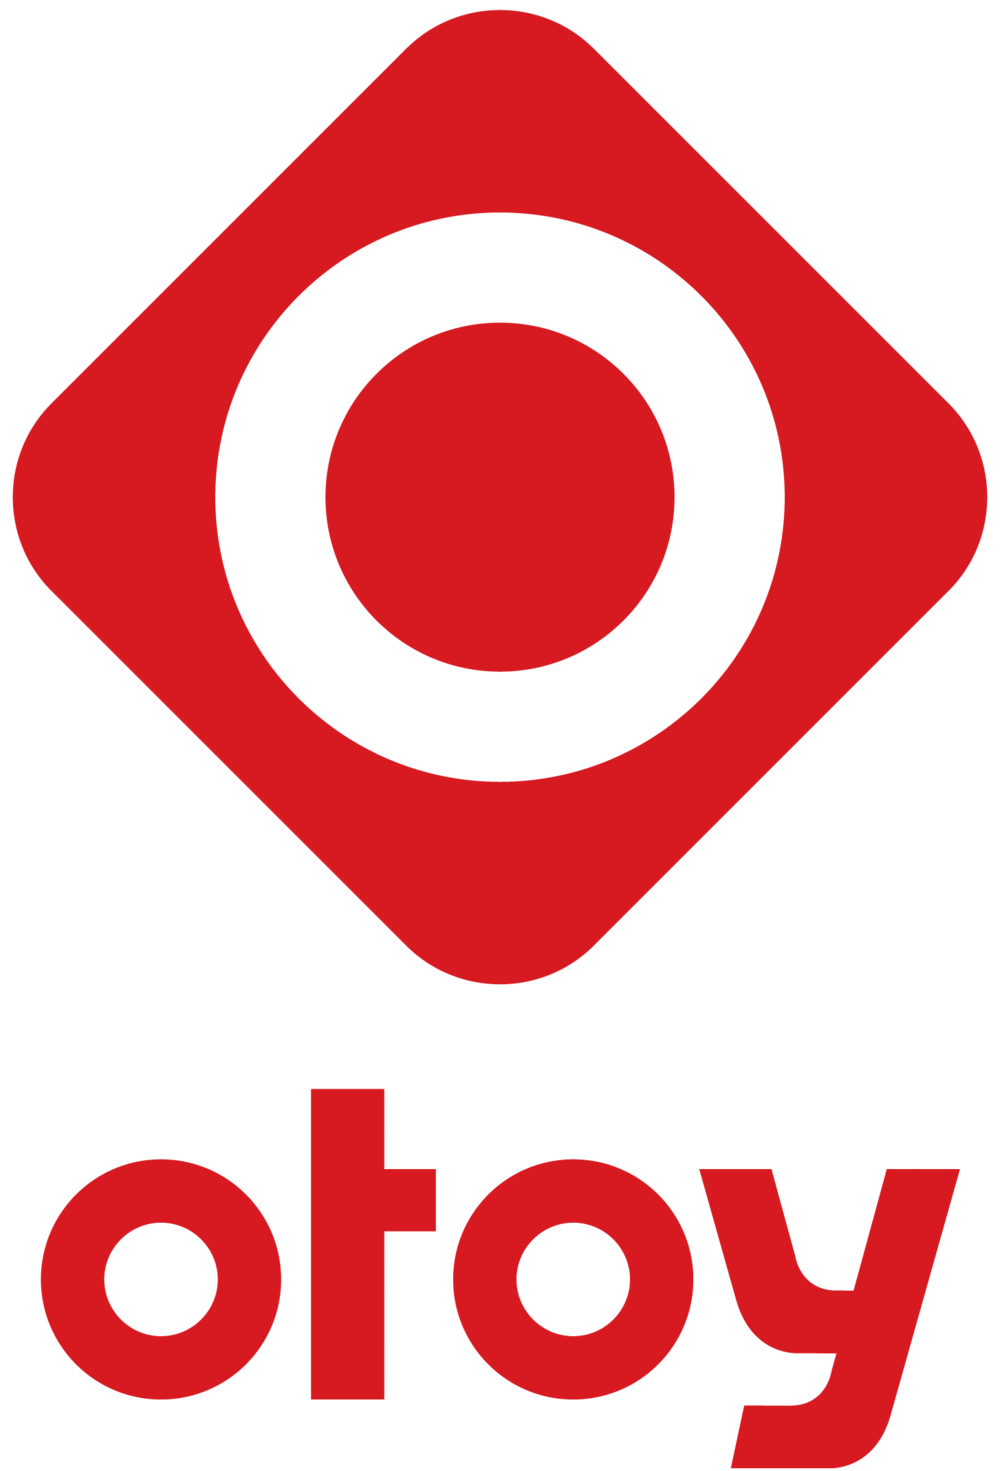 OTOY_logo.png